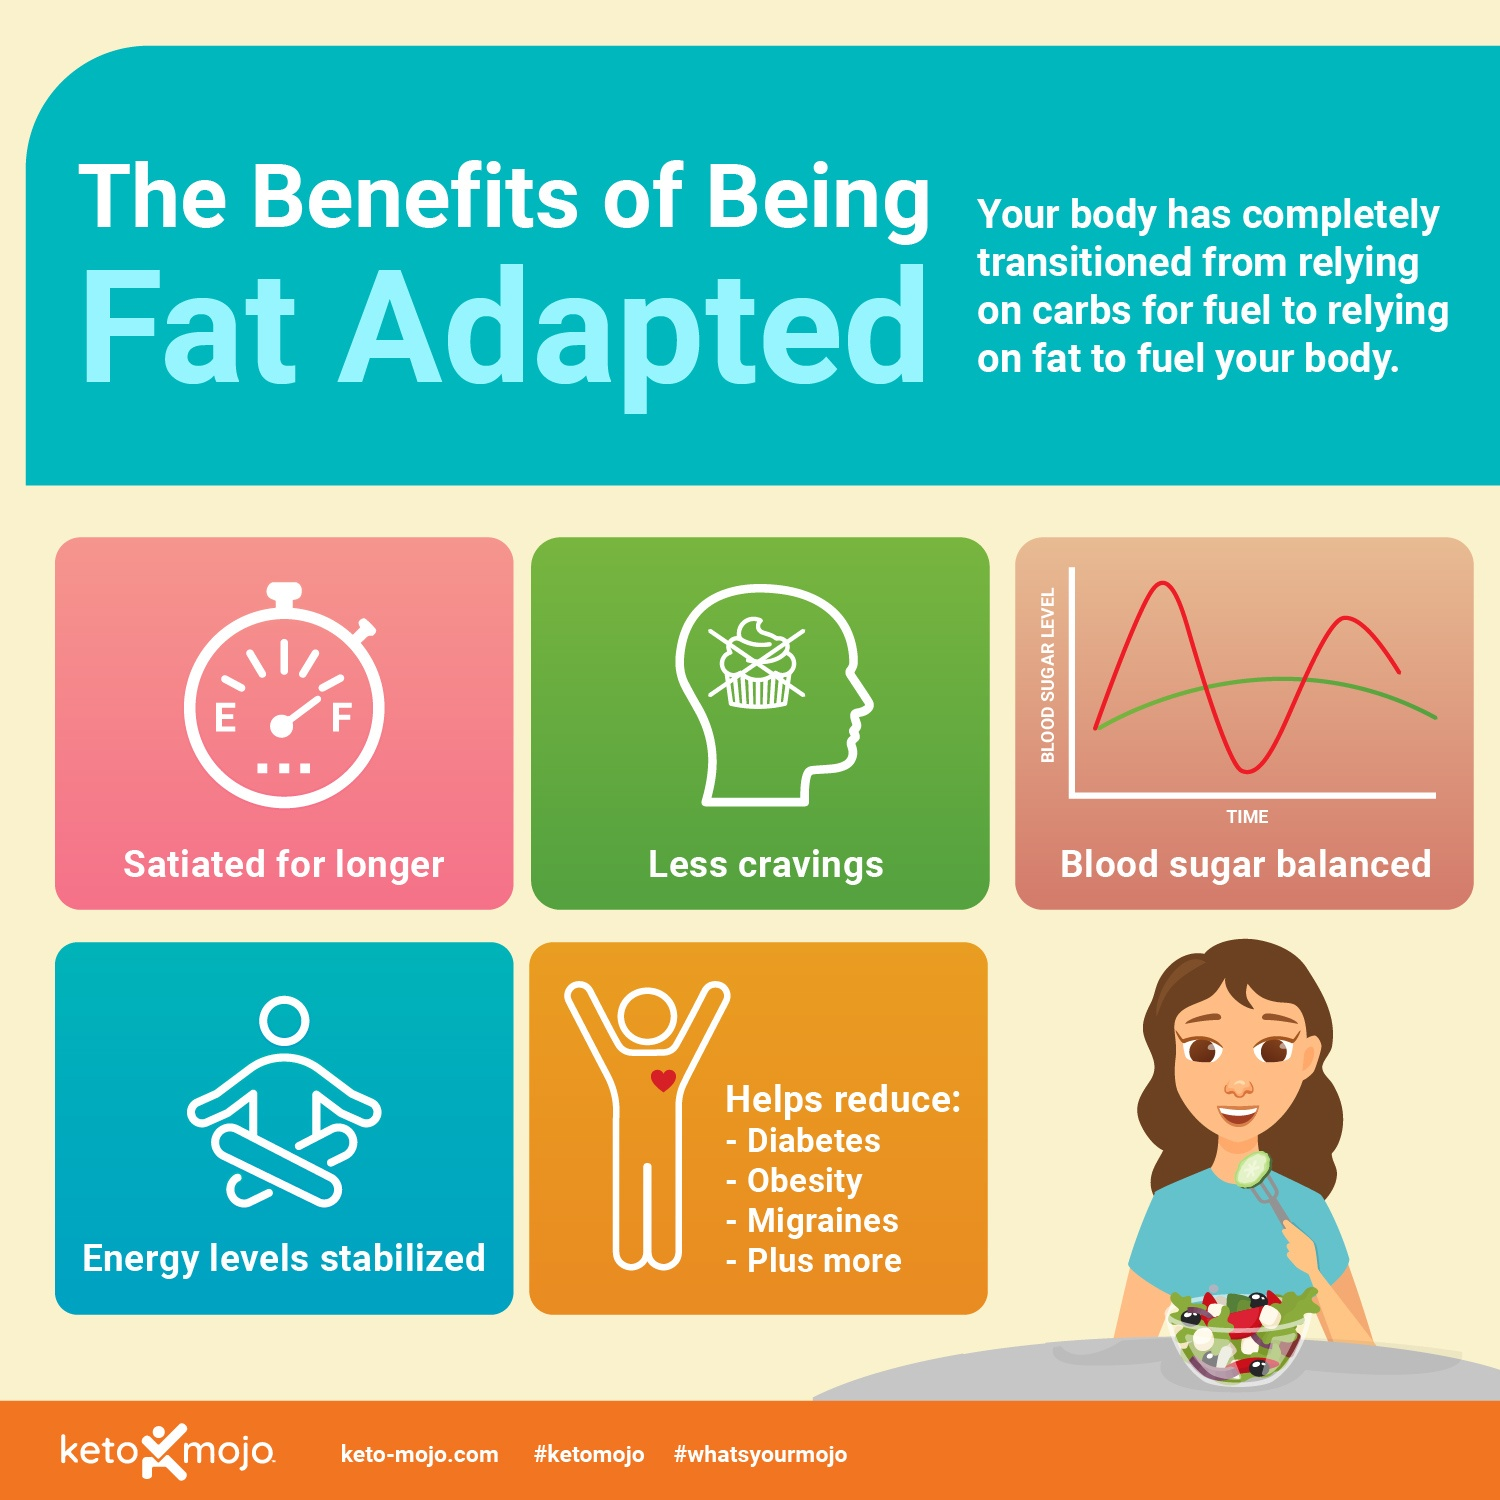 Ket-Mojo: The benefits of being fat adapted